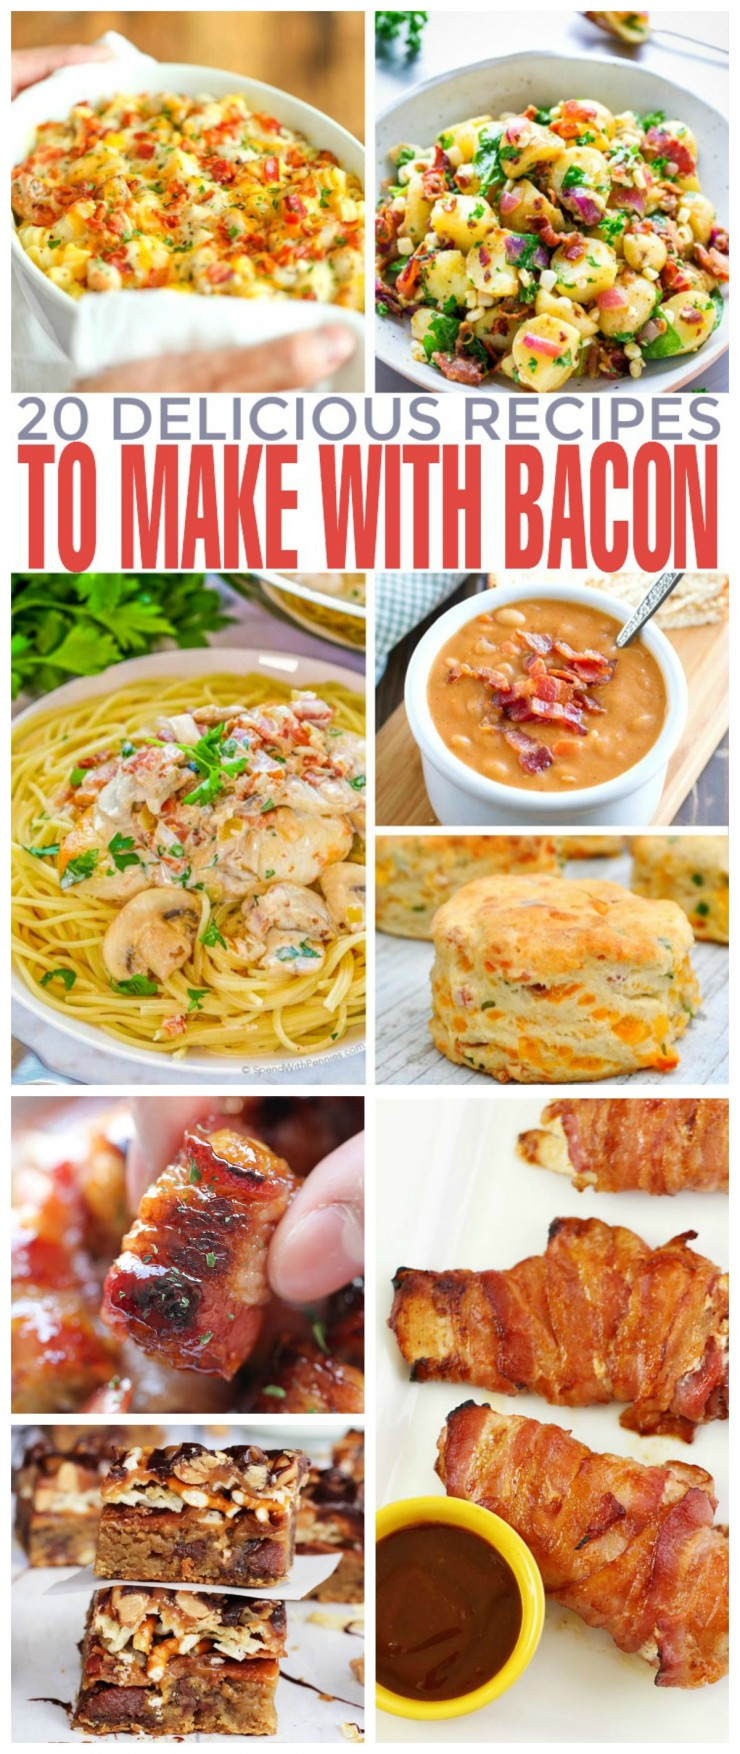 I gathered a collection of 20 delicious recipes you can make with bacon. From delicious potato salads and savoury bacon wrapped tater tot bombs to homemade bean soups and even bacon lo mein, these ideas will take you dinner from boring to fantastic.